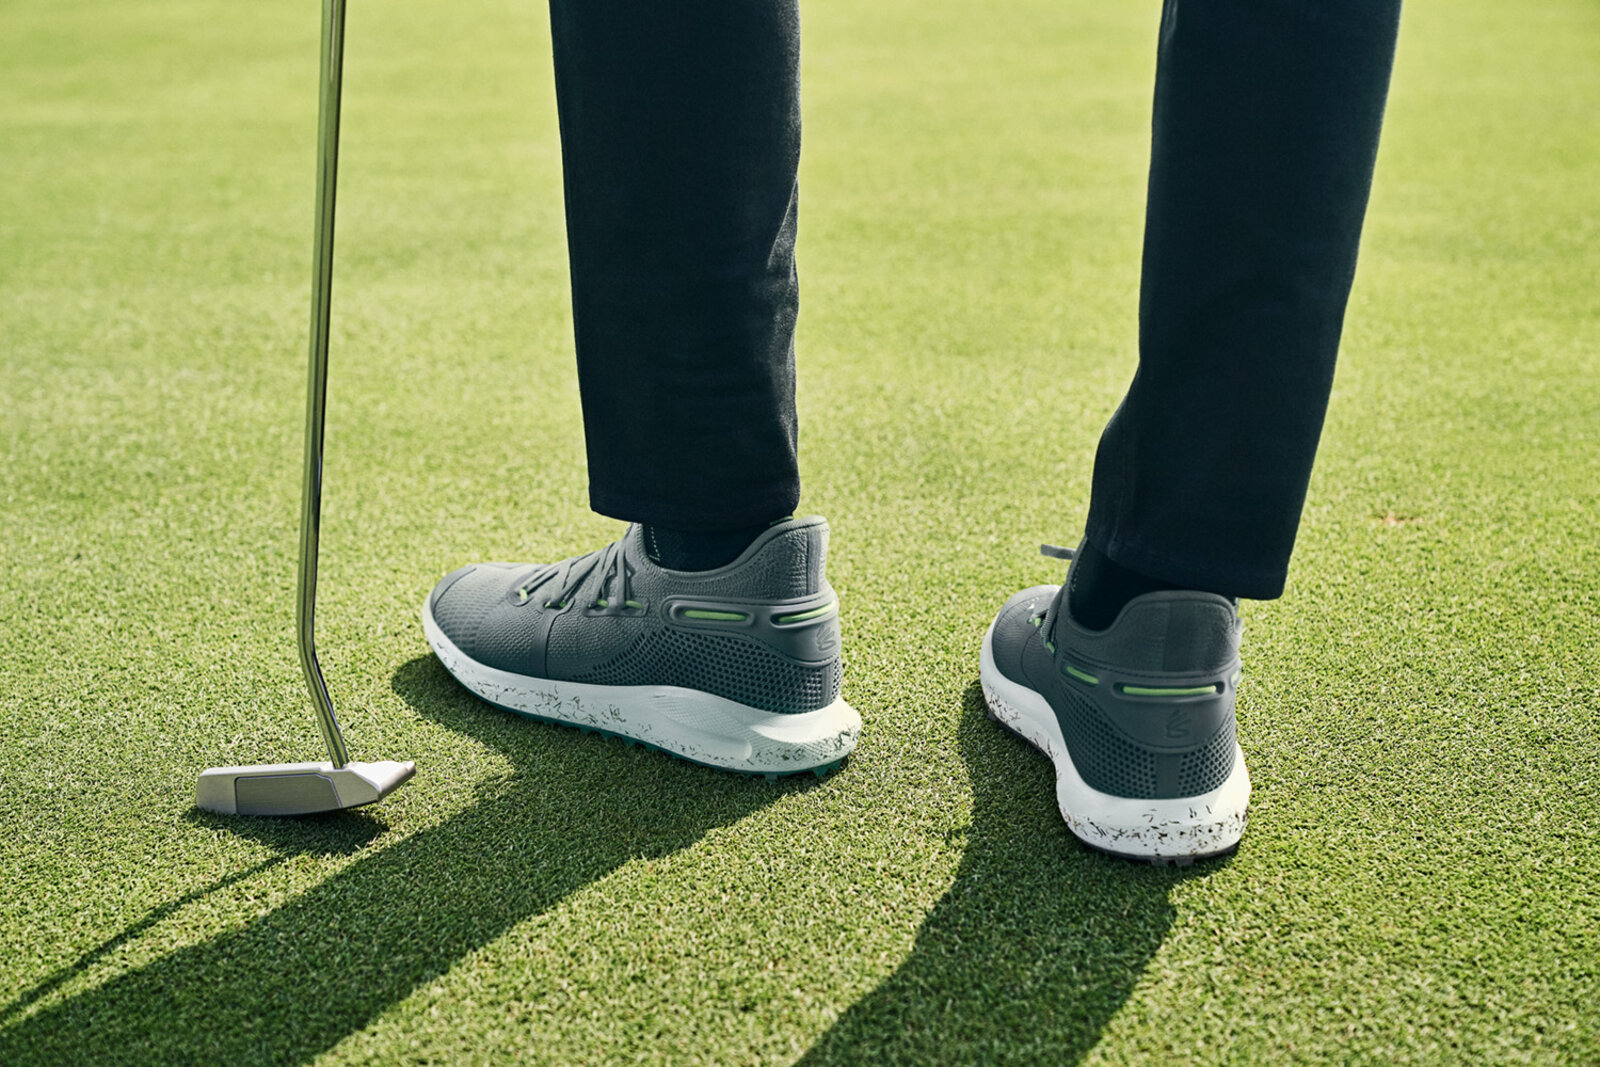 The Rotational Resistance Traction technology used in the Curry 6 SL creates traction through resistance - in both vertical and horizontal directions - to help keep the feet planted throughout the duration of a golf swing.